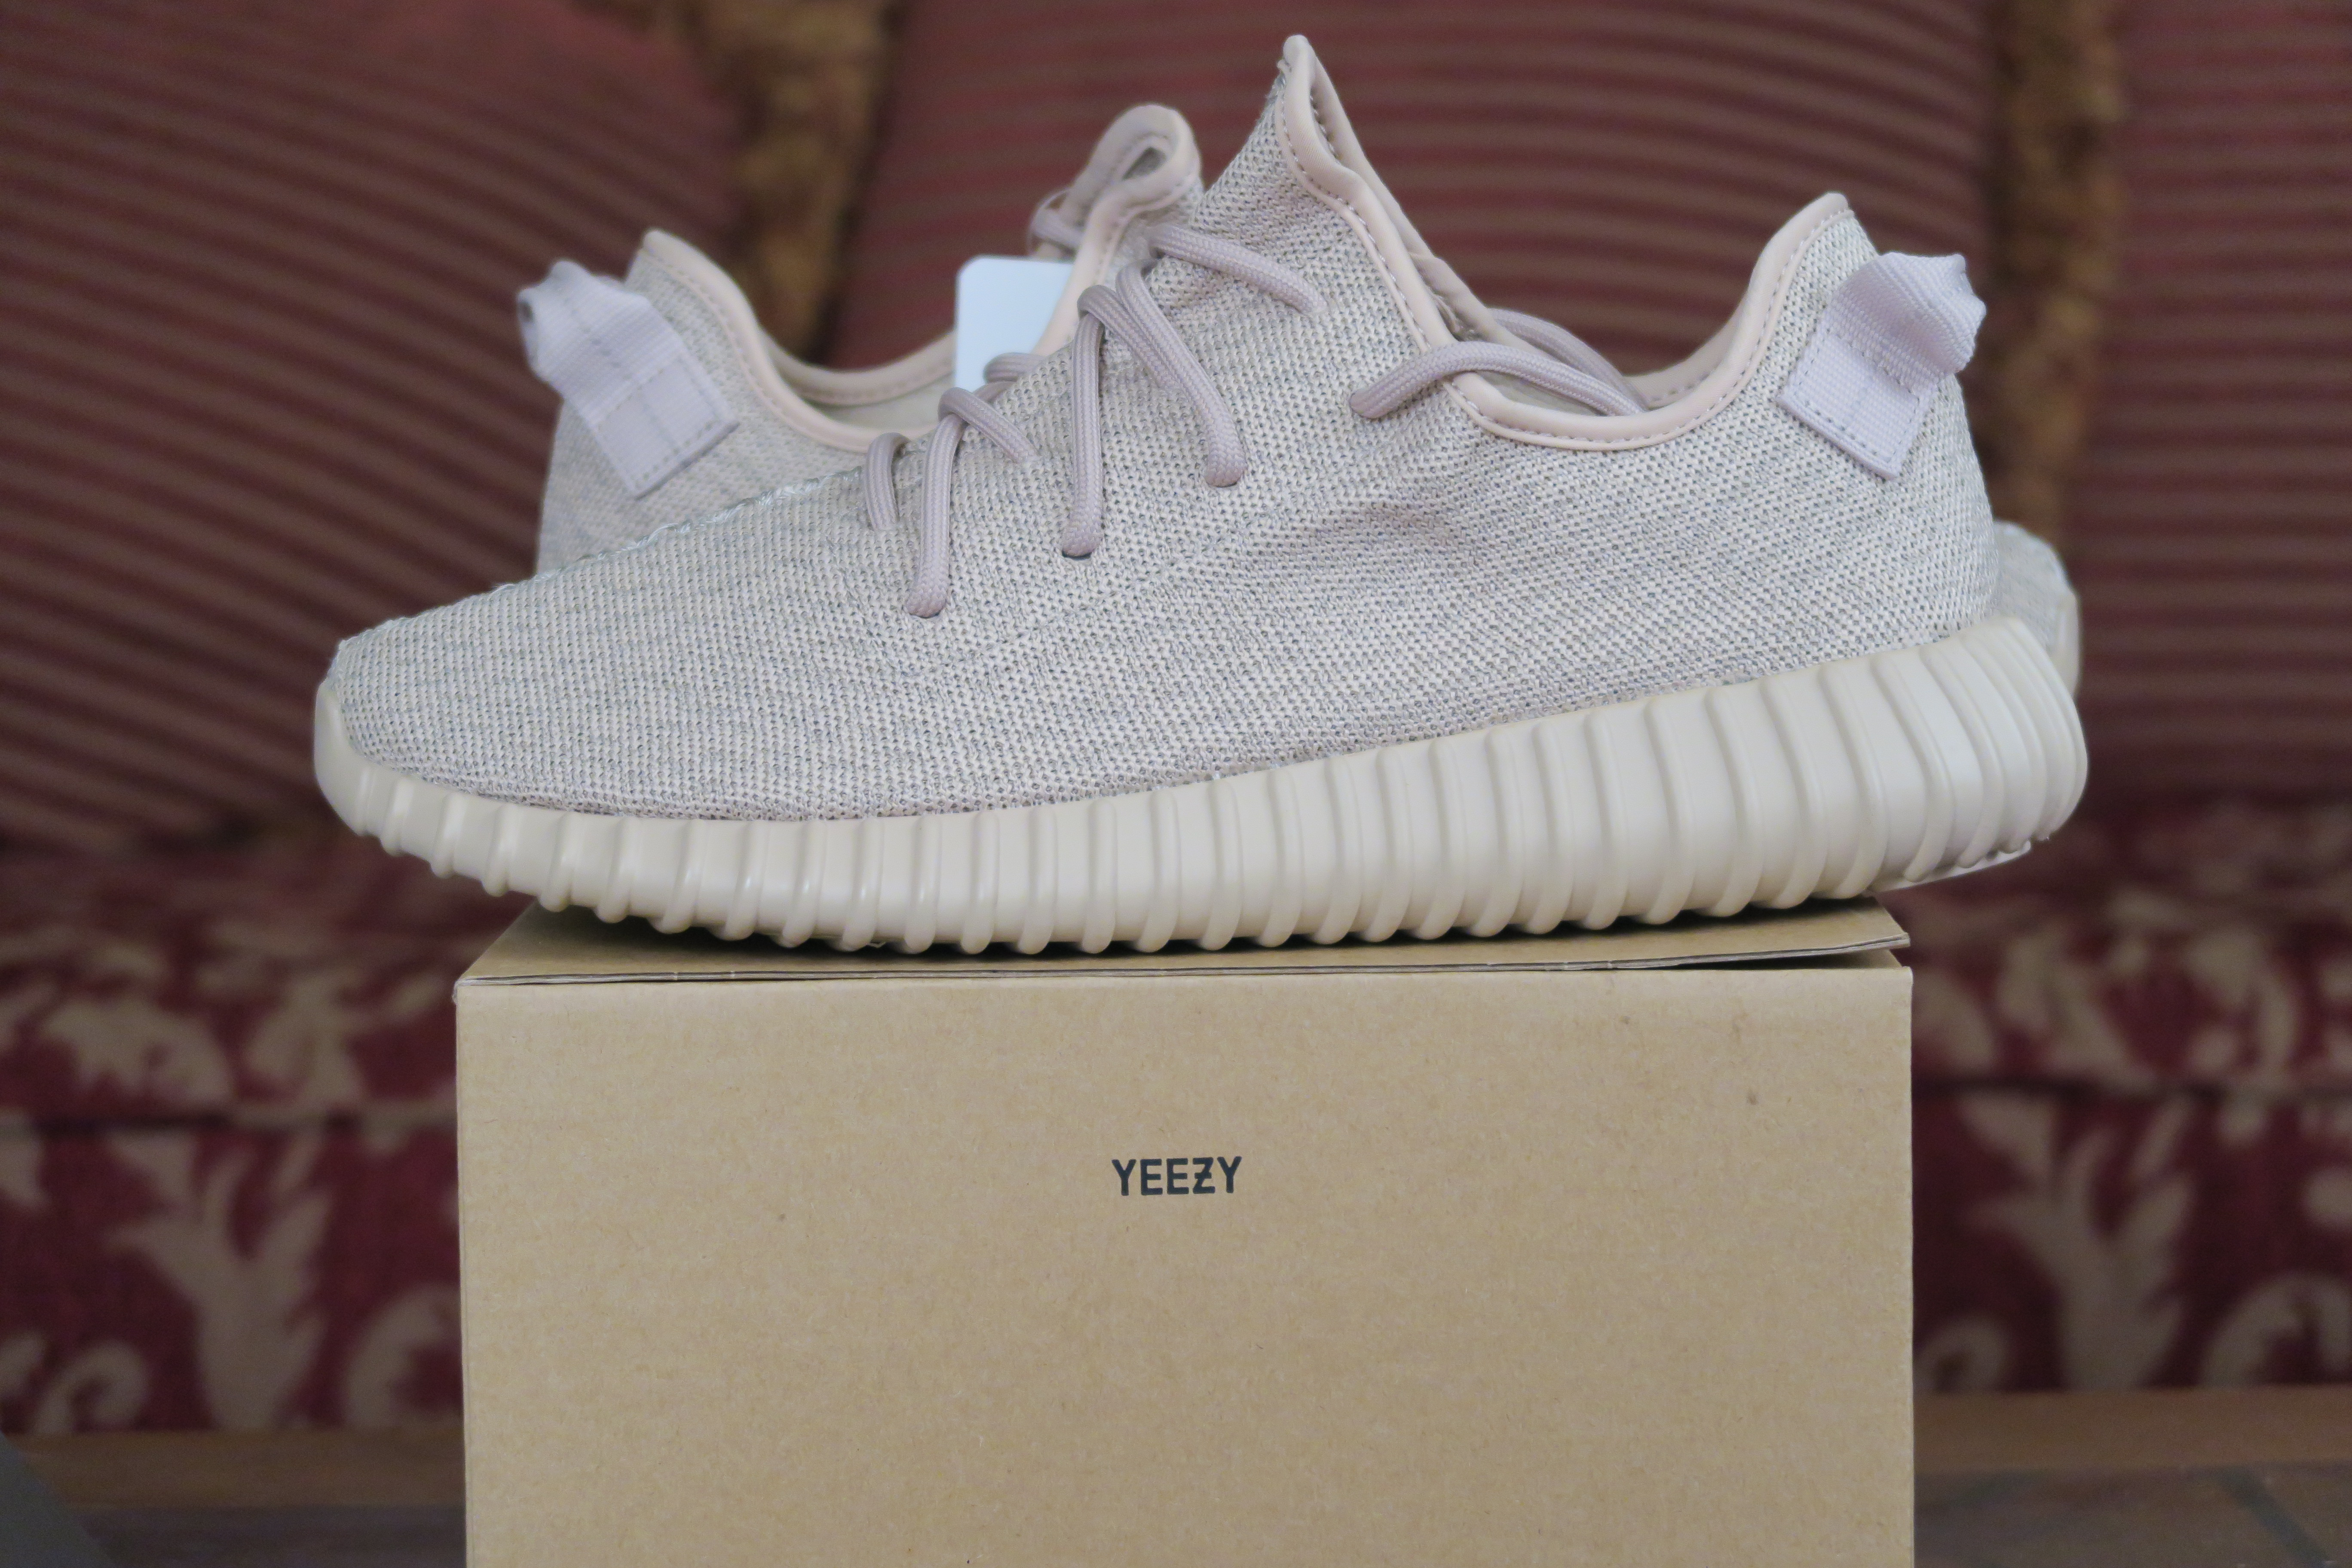 Yeezy Boost 350 Tan